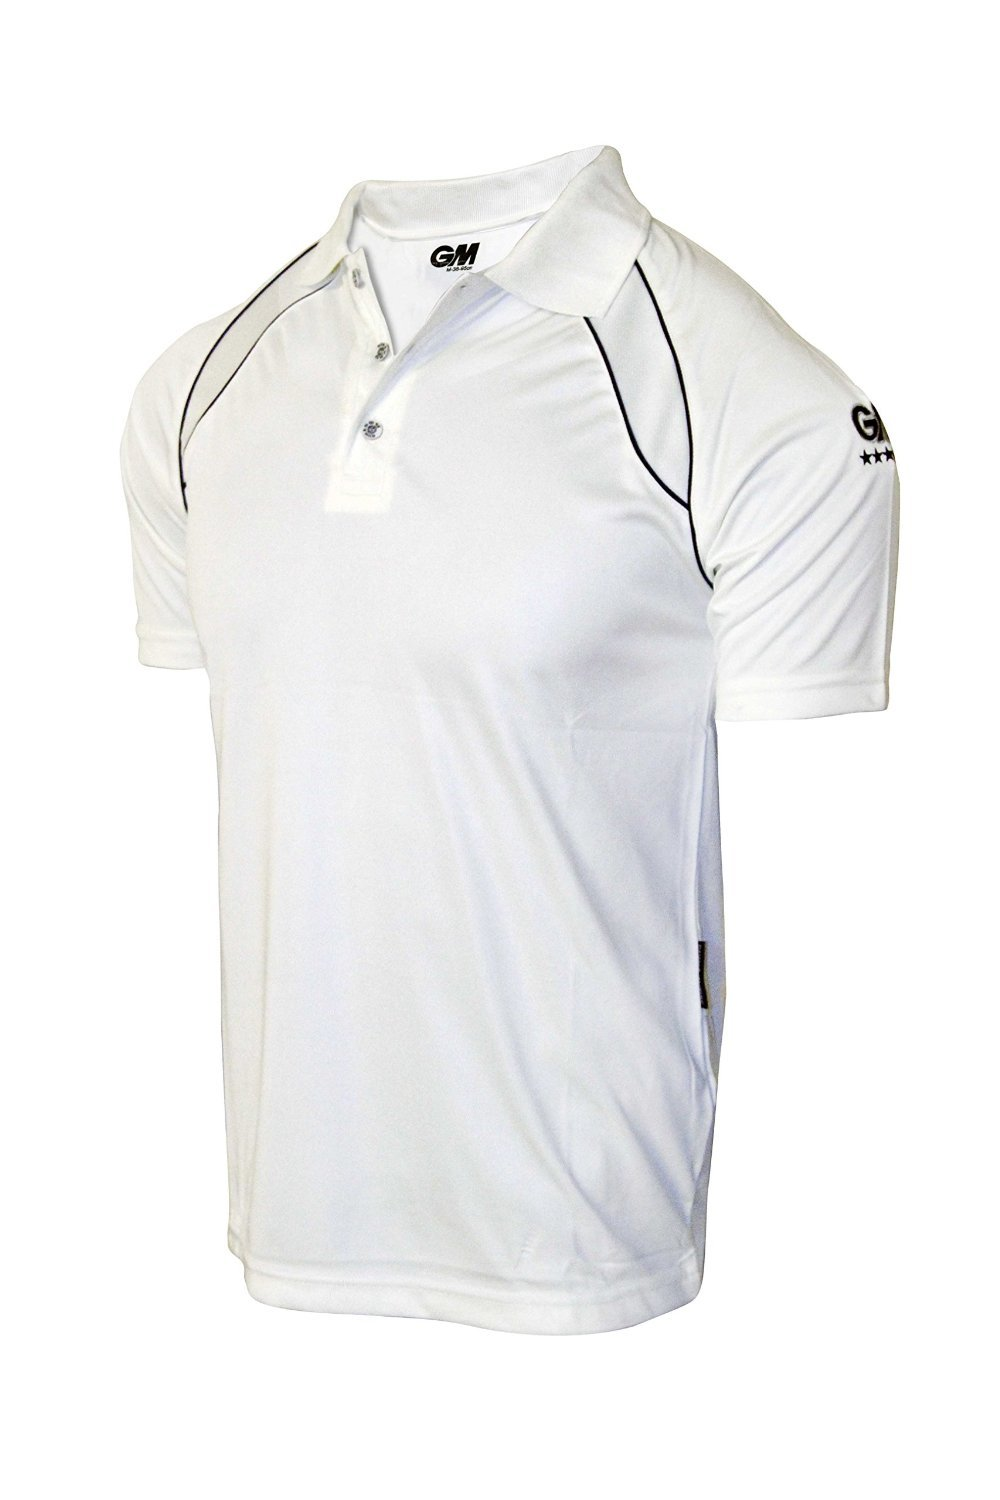 Cricket t shirt white - Buy Gm 7205 Cricket T Shirt Half Sleeve Online At Low Prices In India Amazon In